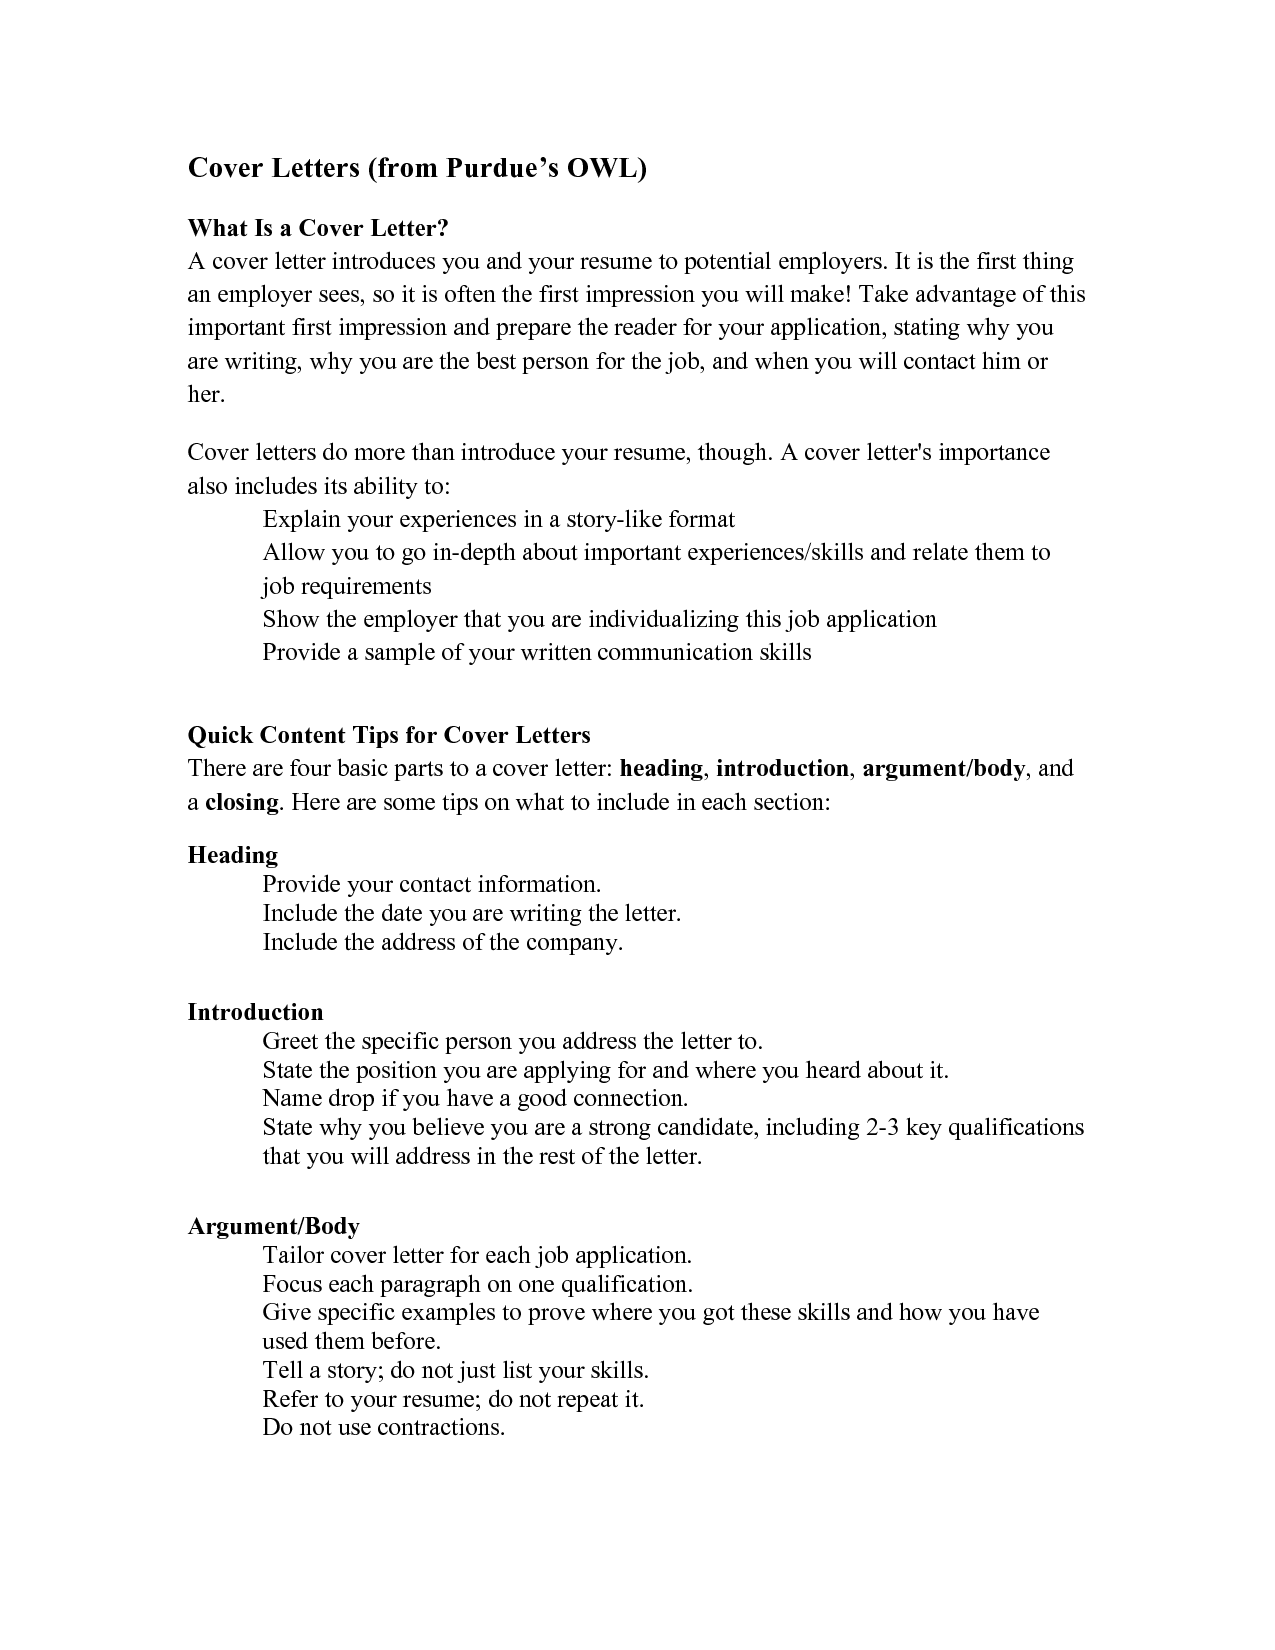 this a great outline of what to put in a cover letter careers